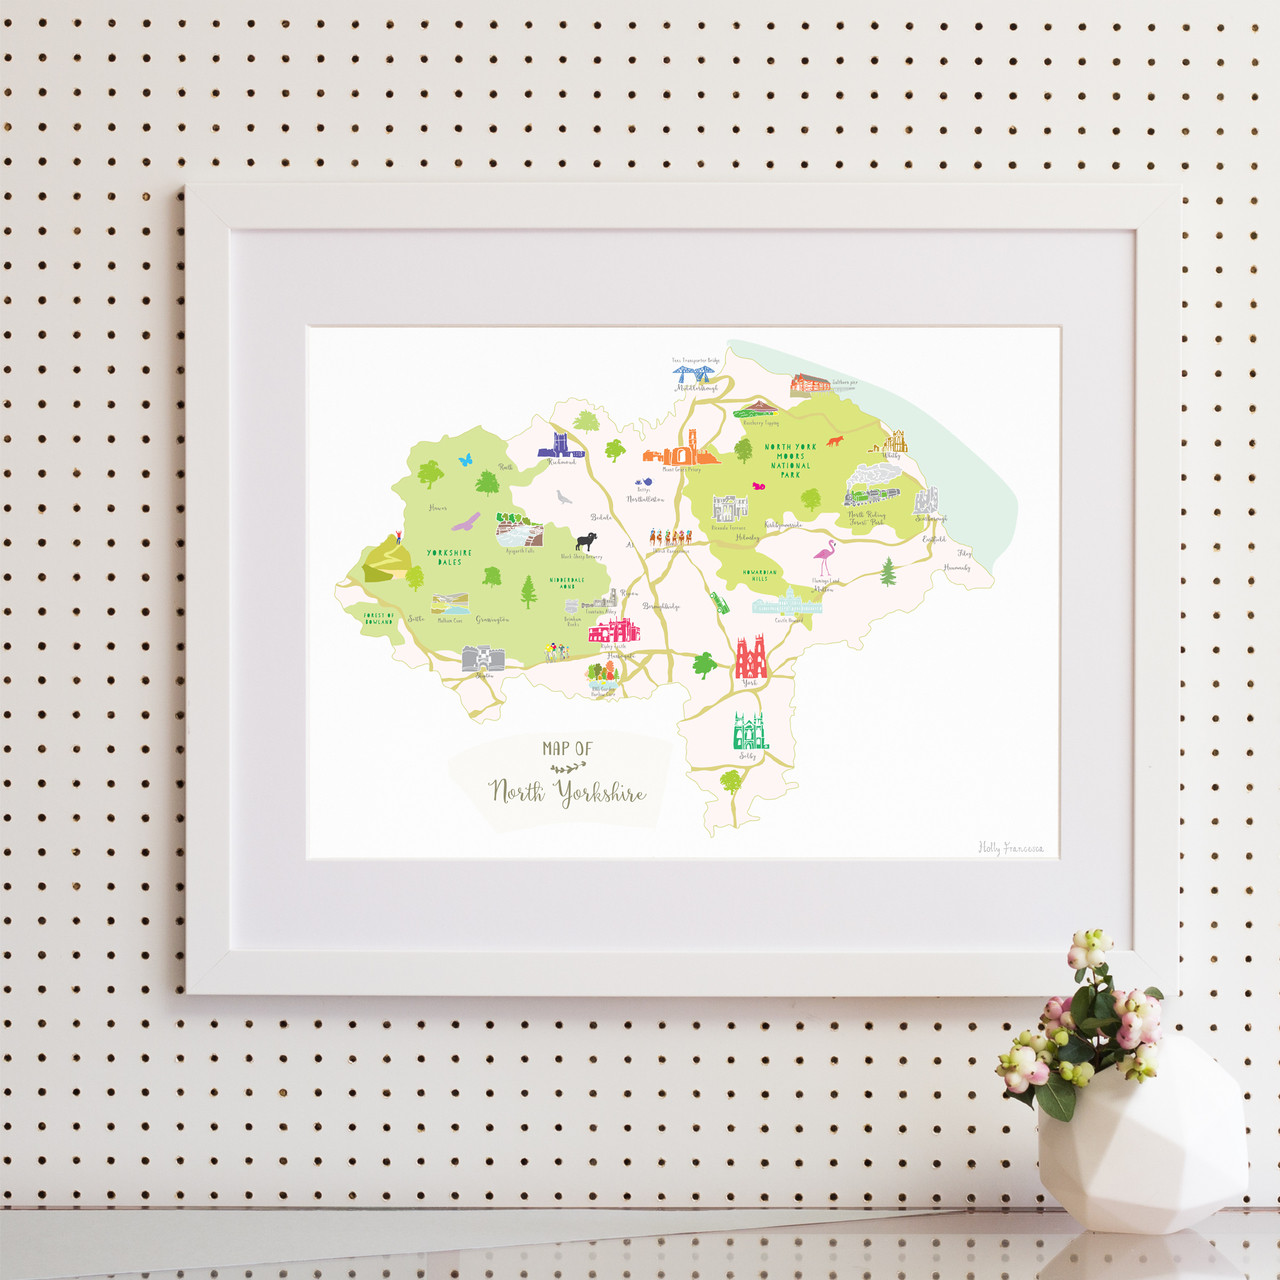 Illustrated Hand Drawn Map Of North Yorkshire By Uk Artist Holly